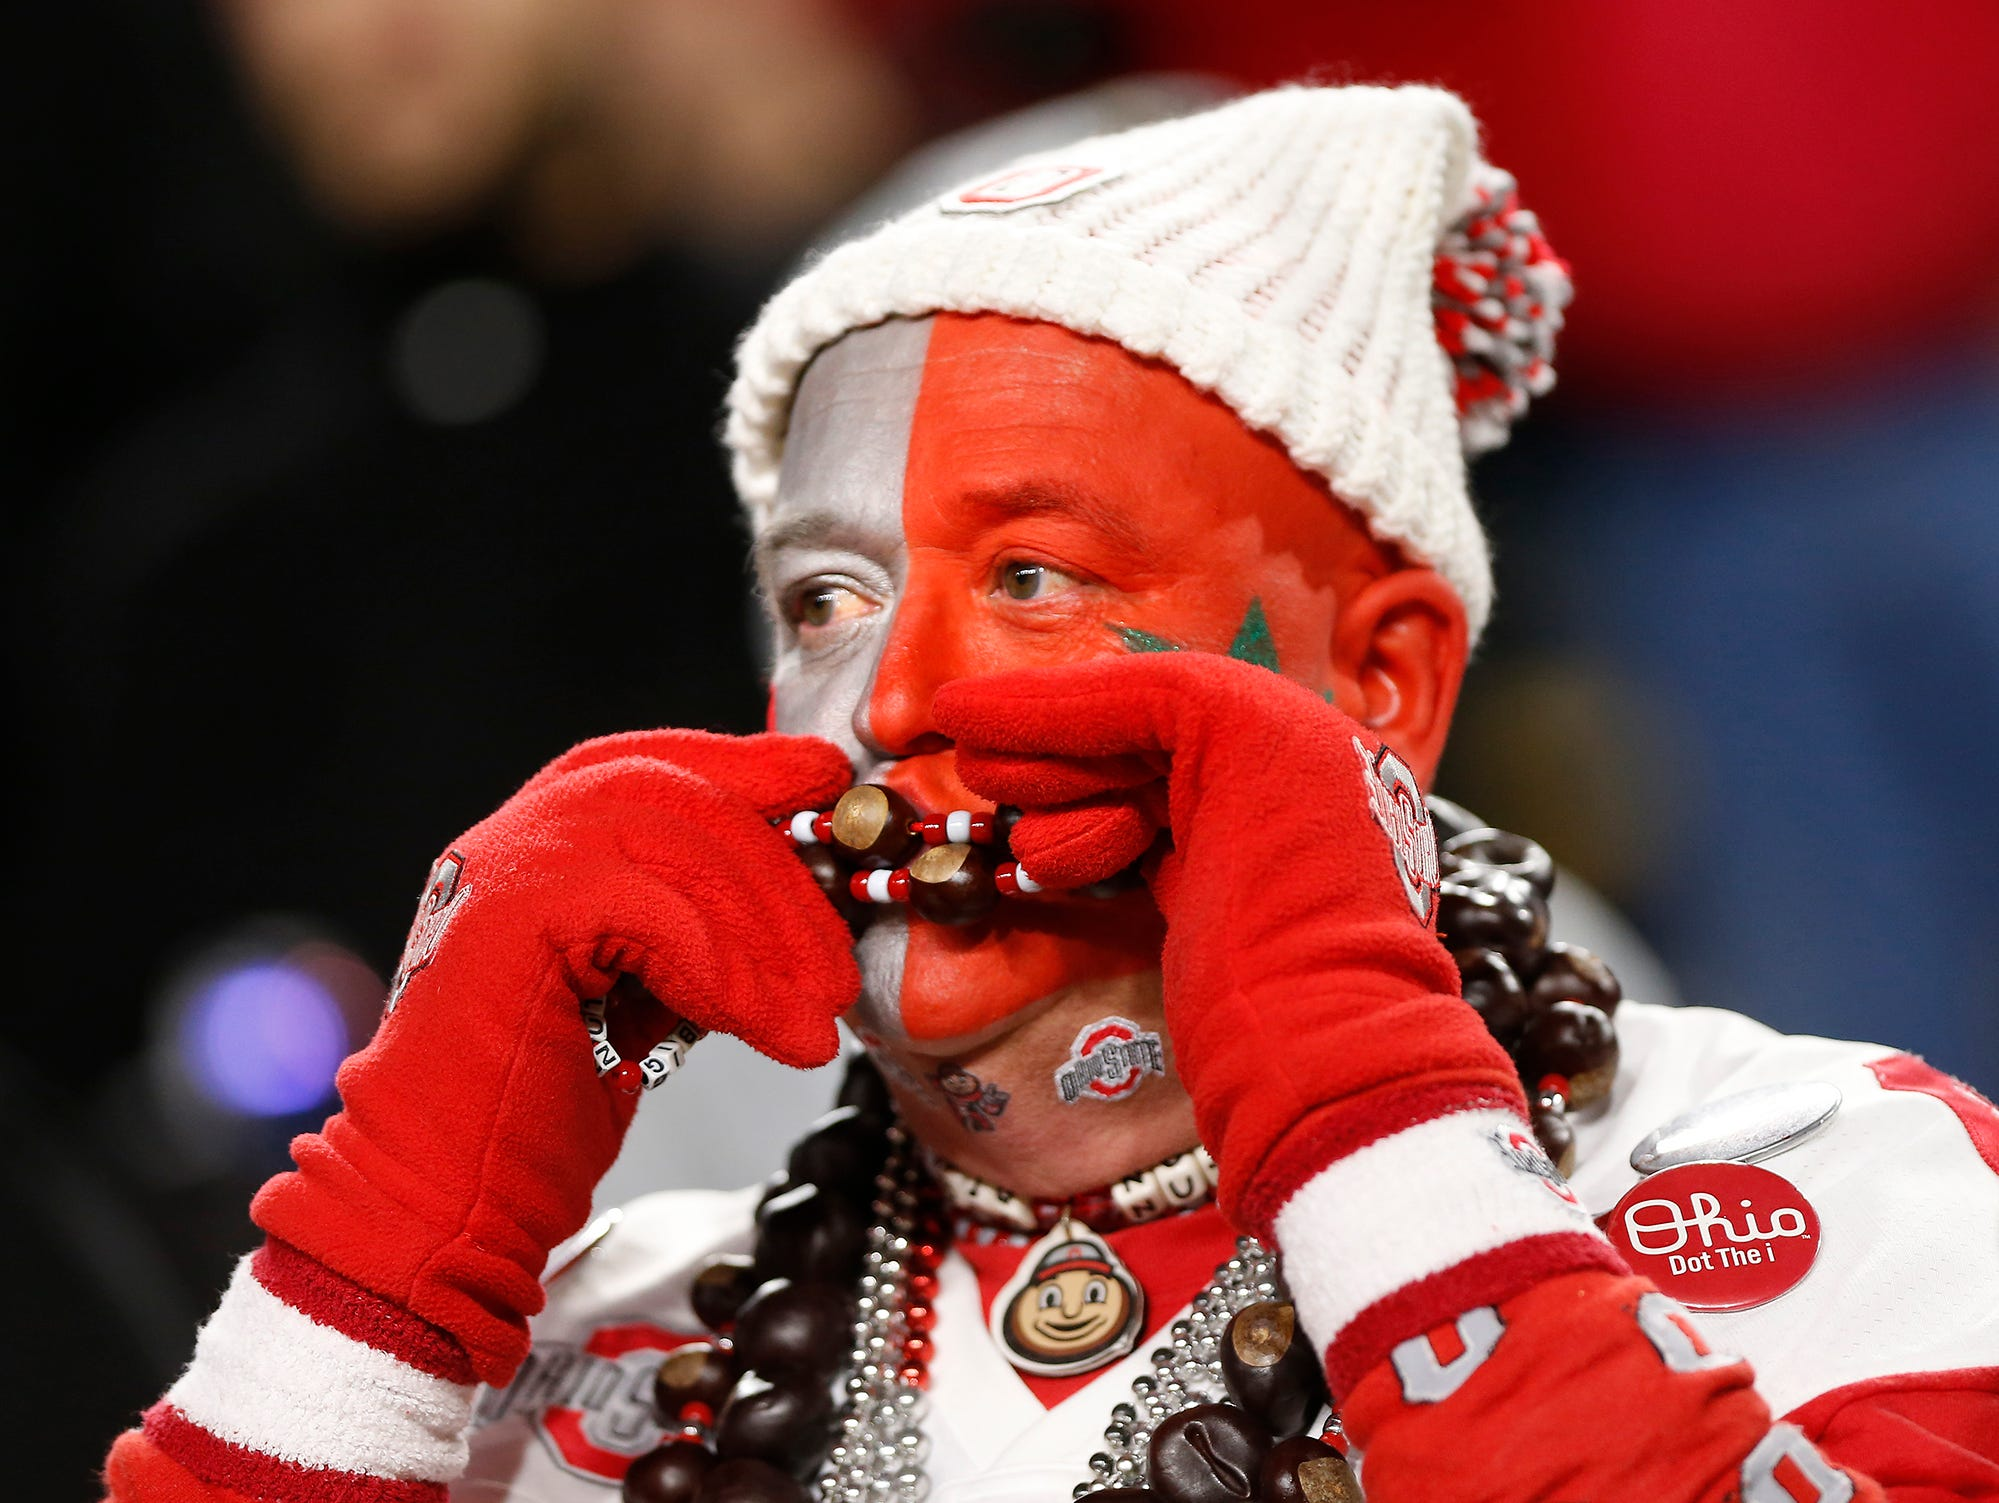 """Ohio State super fan Jon """"Big Nut"""" Peters kisses a necklace of buckeyes as the Buckeyes struggle late against Purdue Saturday, October 20, 2018, at Ross-Ade Stadium. Purdue upset the No. 2 ranked Buckeyes 49-20."""